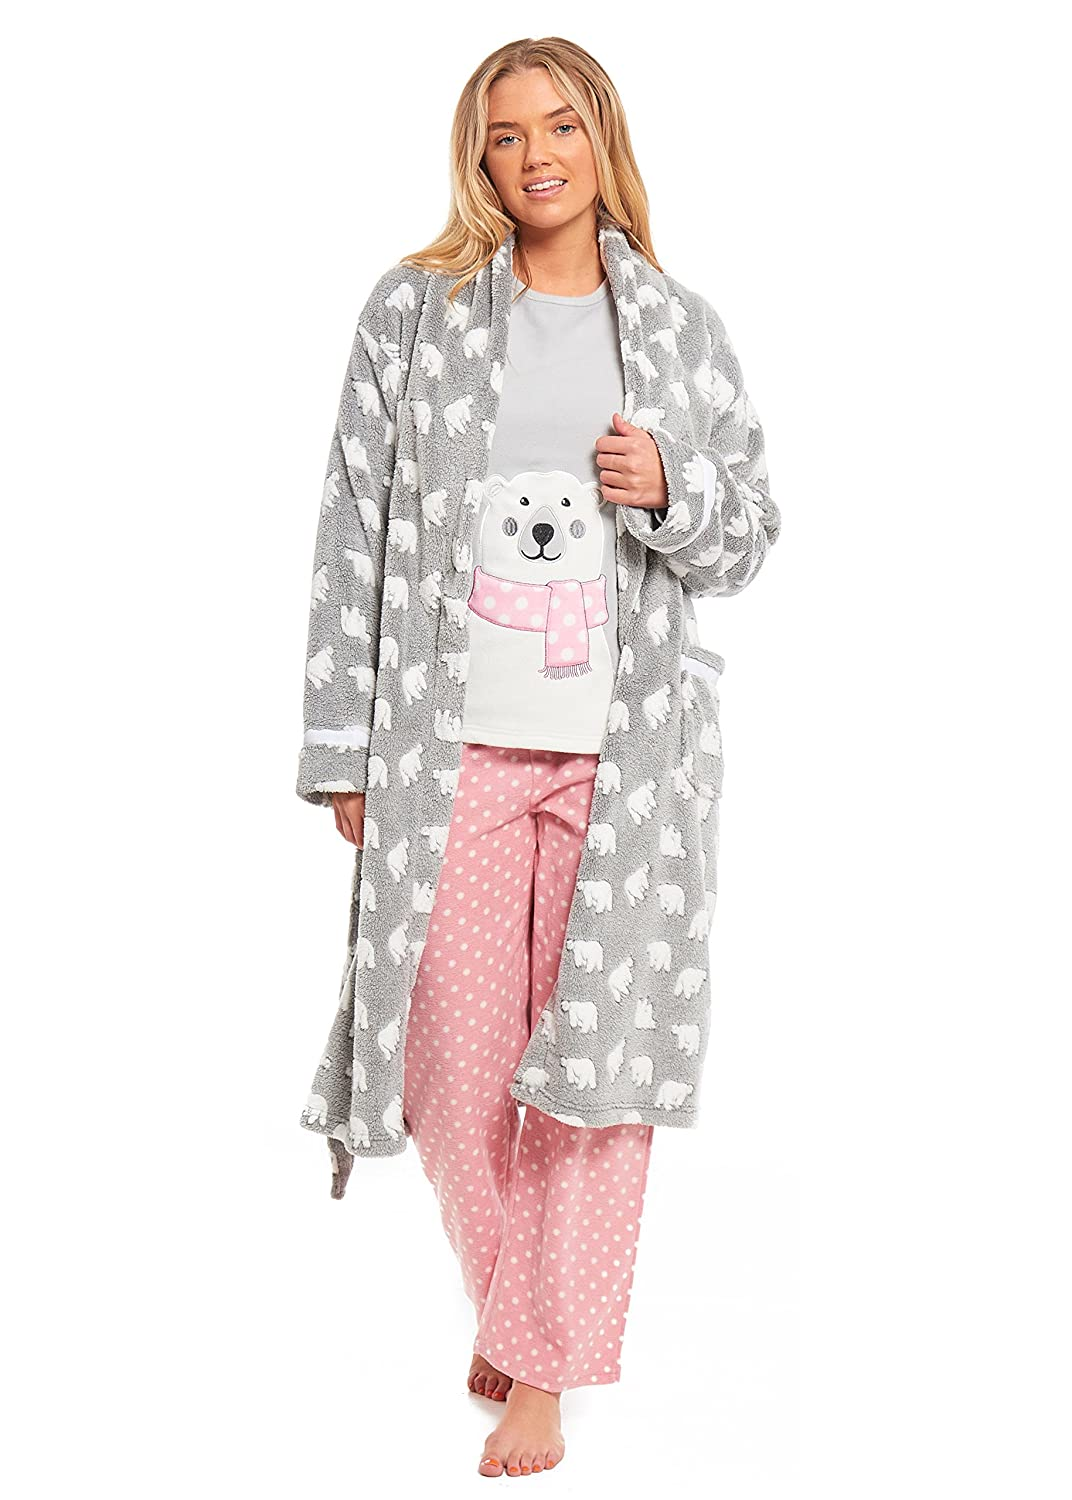 MyShoeStore Ladies Bear Dressing Gown Pyjamas Set Womens Polar Micro Fleece Nightwear PJS Lounge Wear Bathrobe Warm Night Wear Long Sleeve Top Bottoms Pants Shawl Neck Wrap Bath Robe House Coat